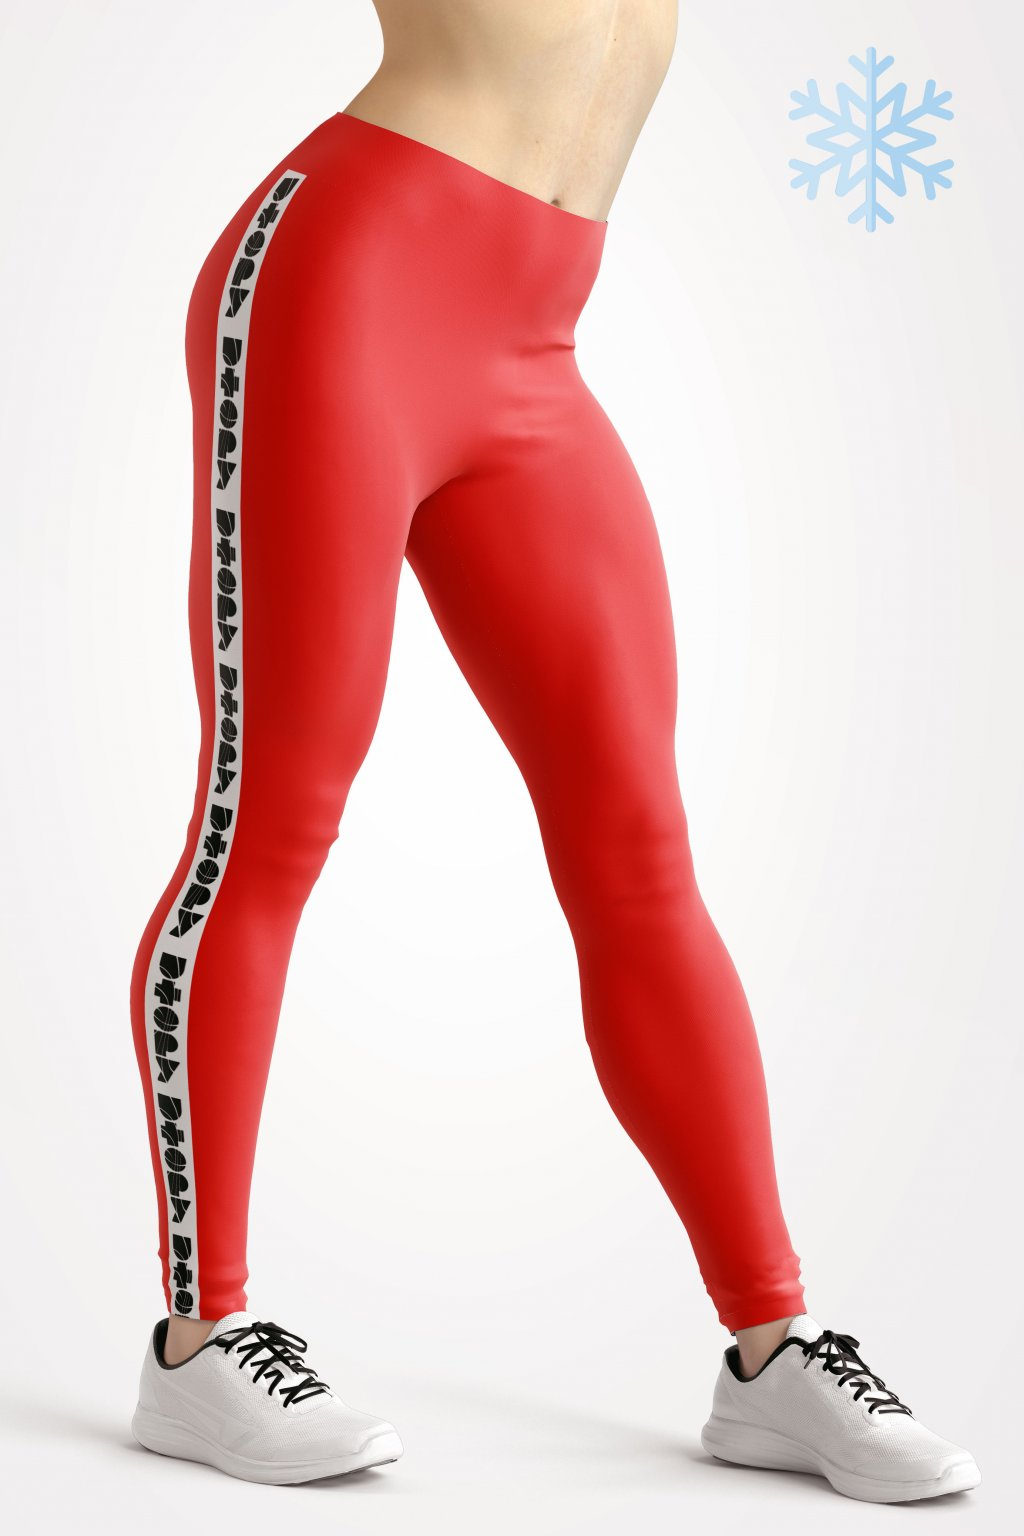 termo leginy basic collection red utopy front by utopy v2